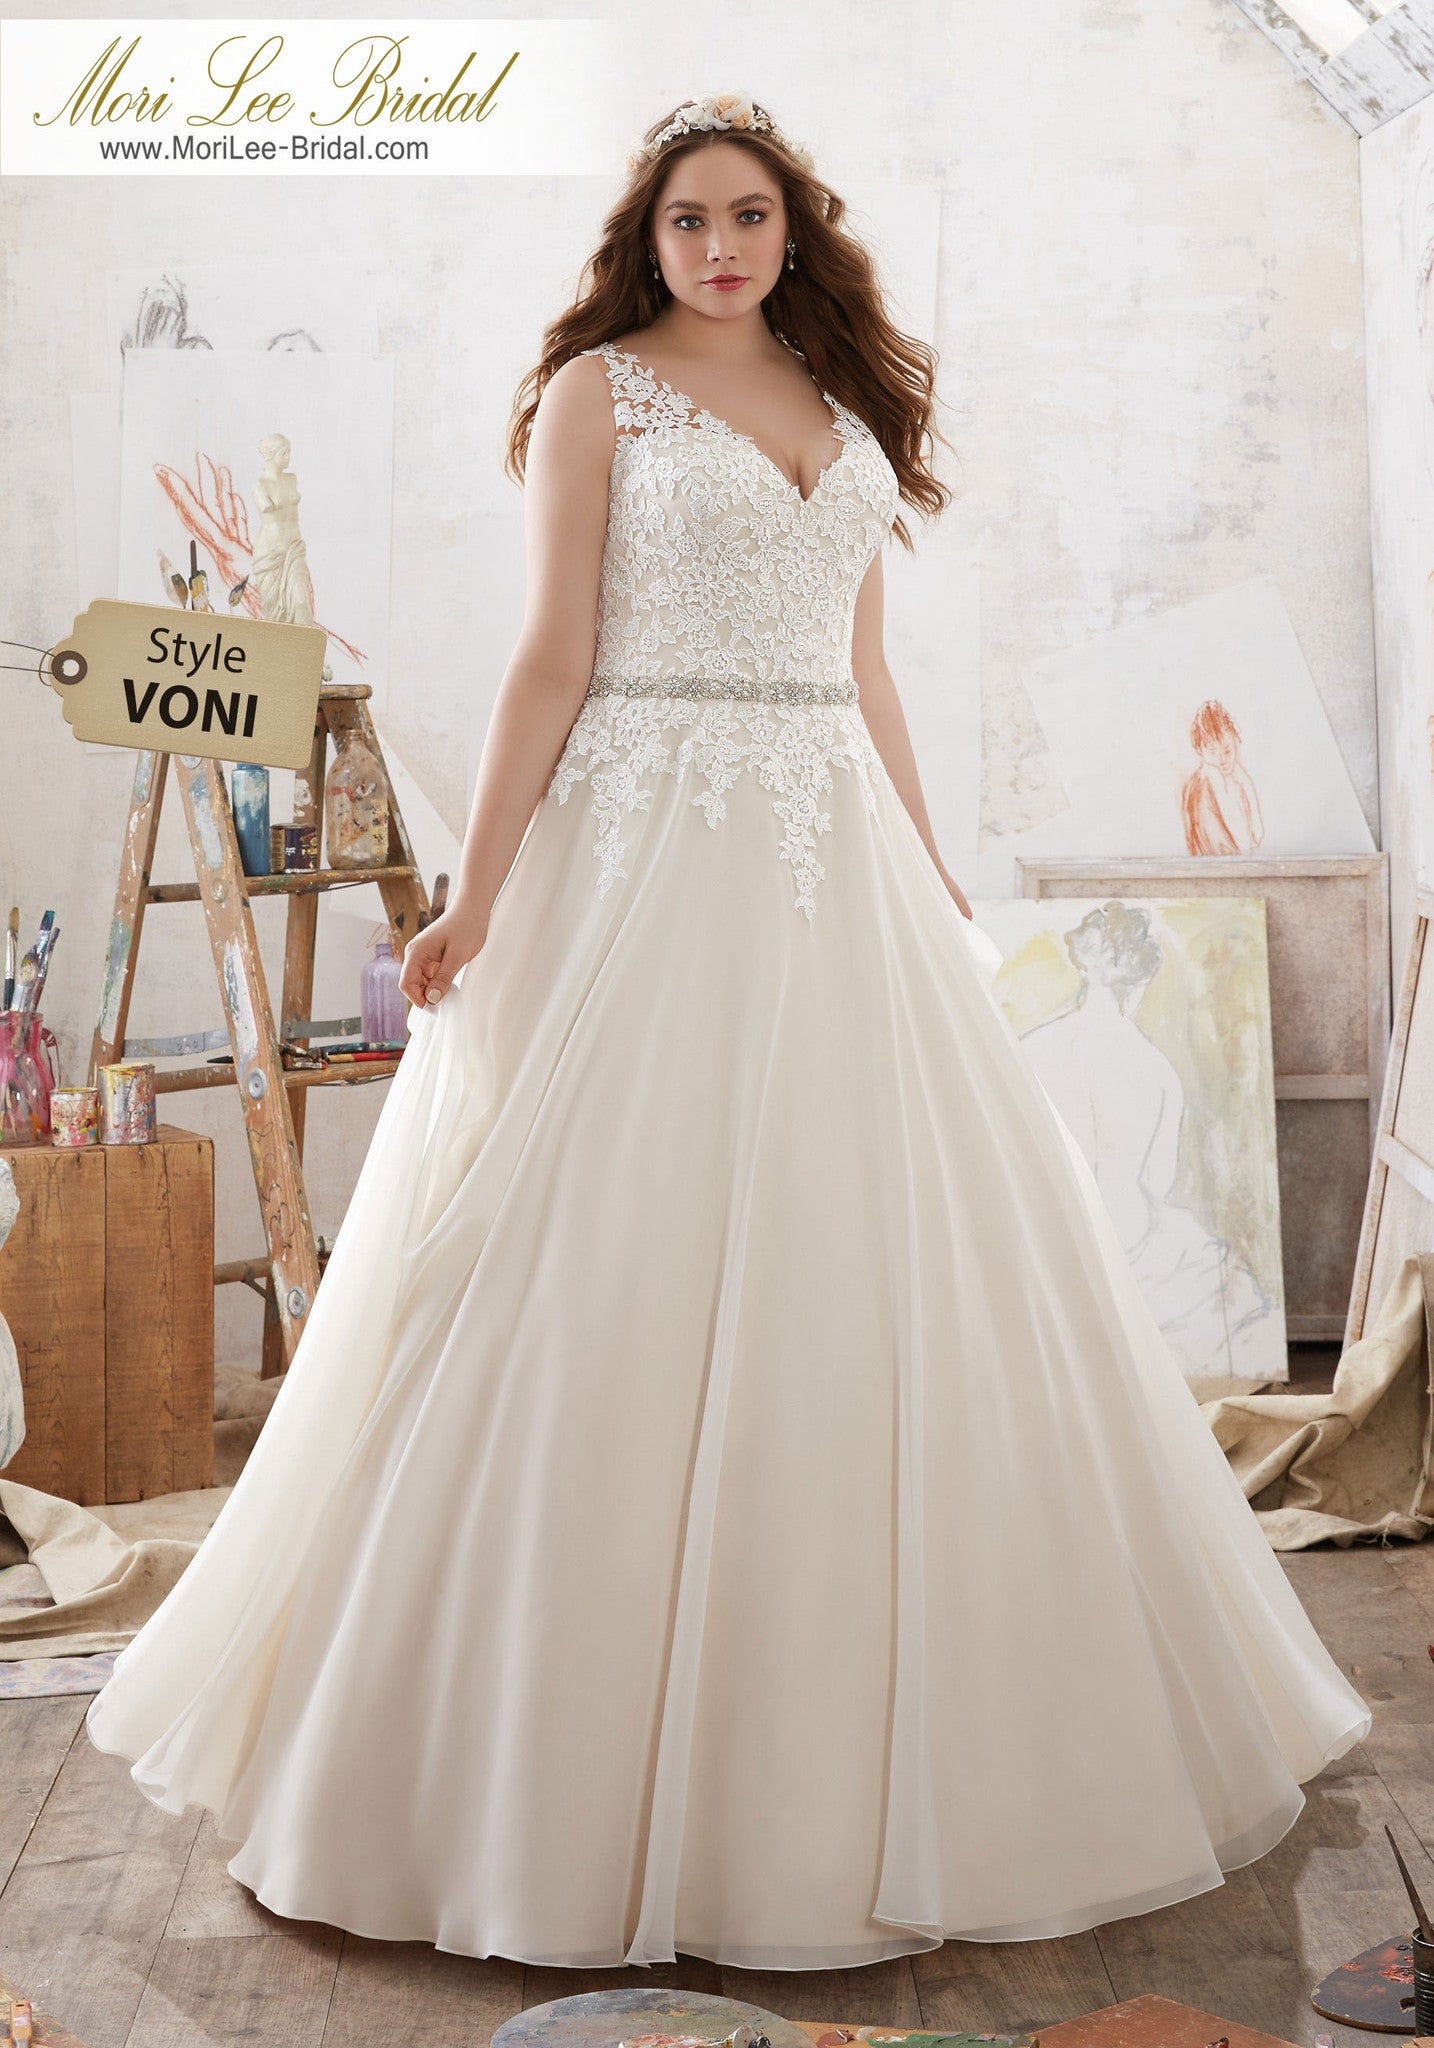 VONI - Mori Lee Bridal